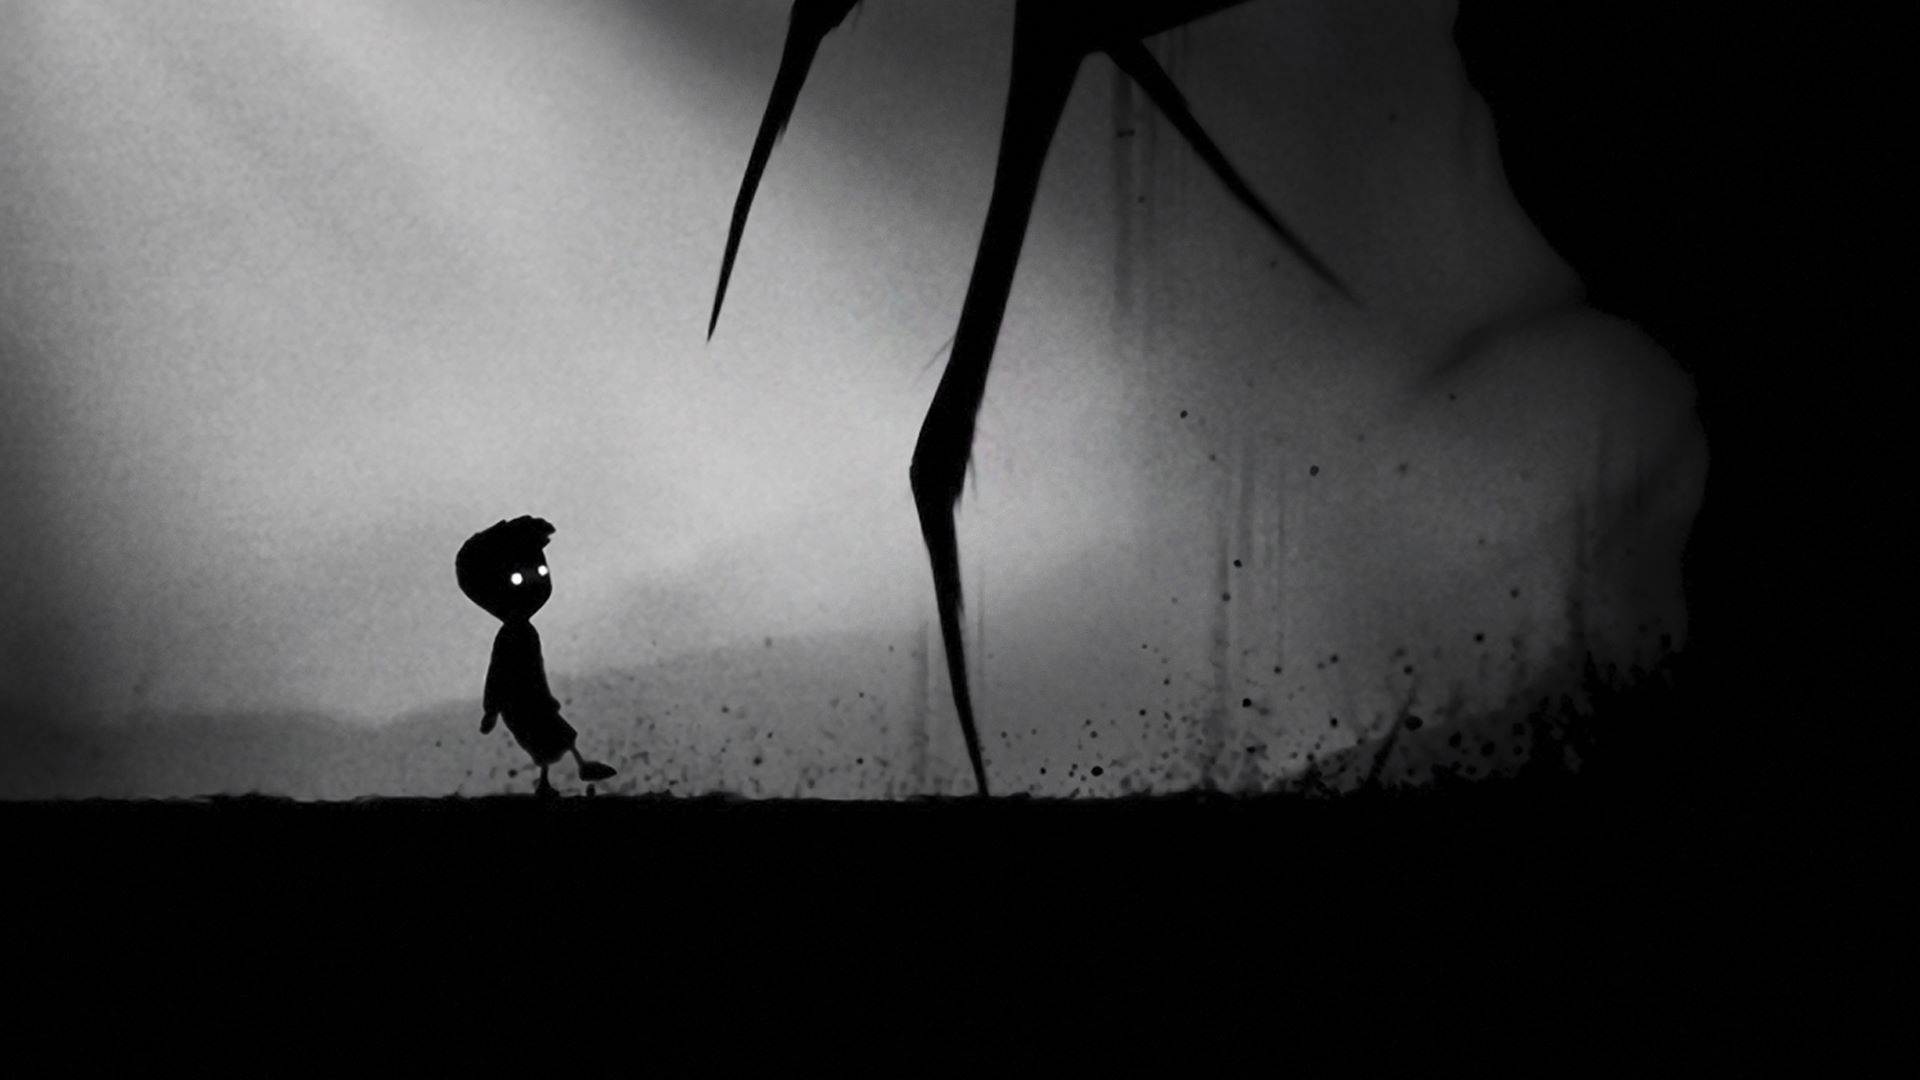 Promotional poster of LIMBO for XBOX